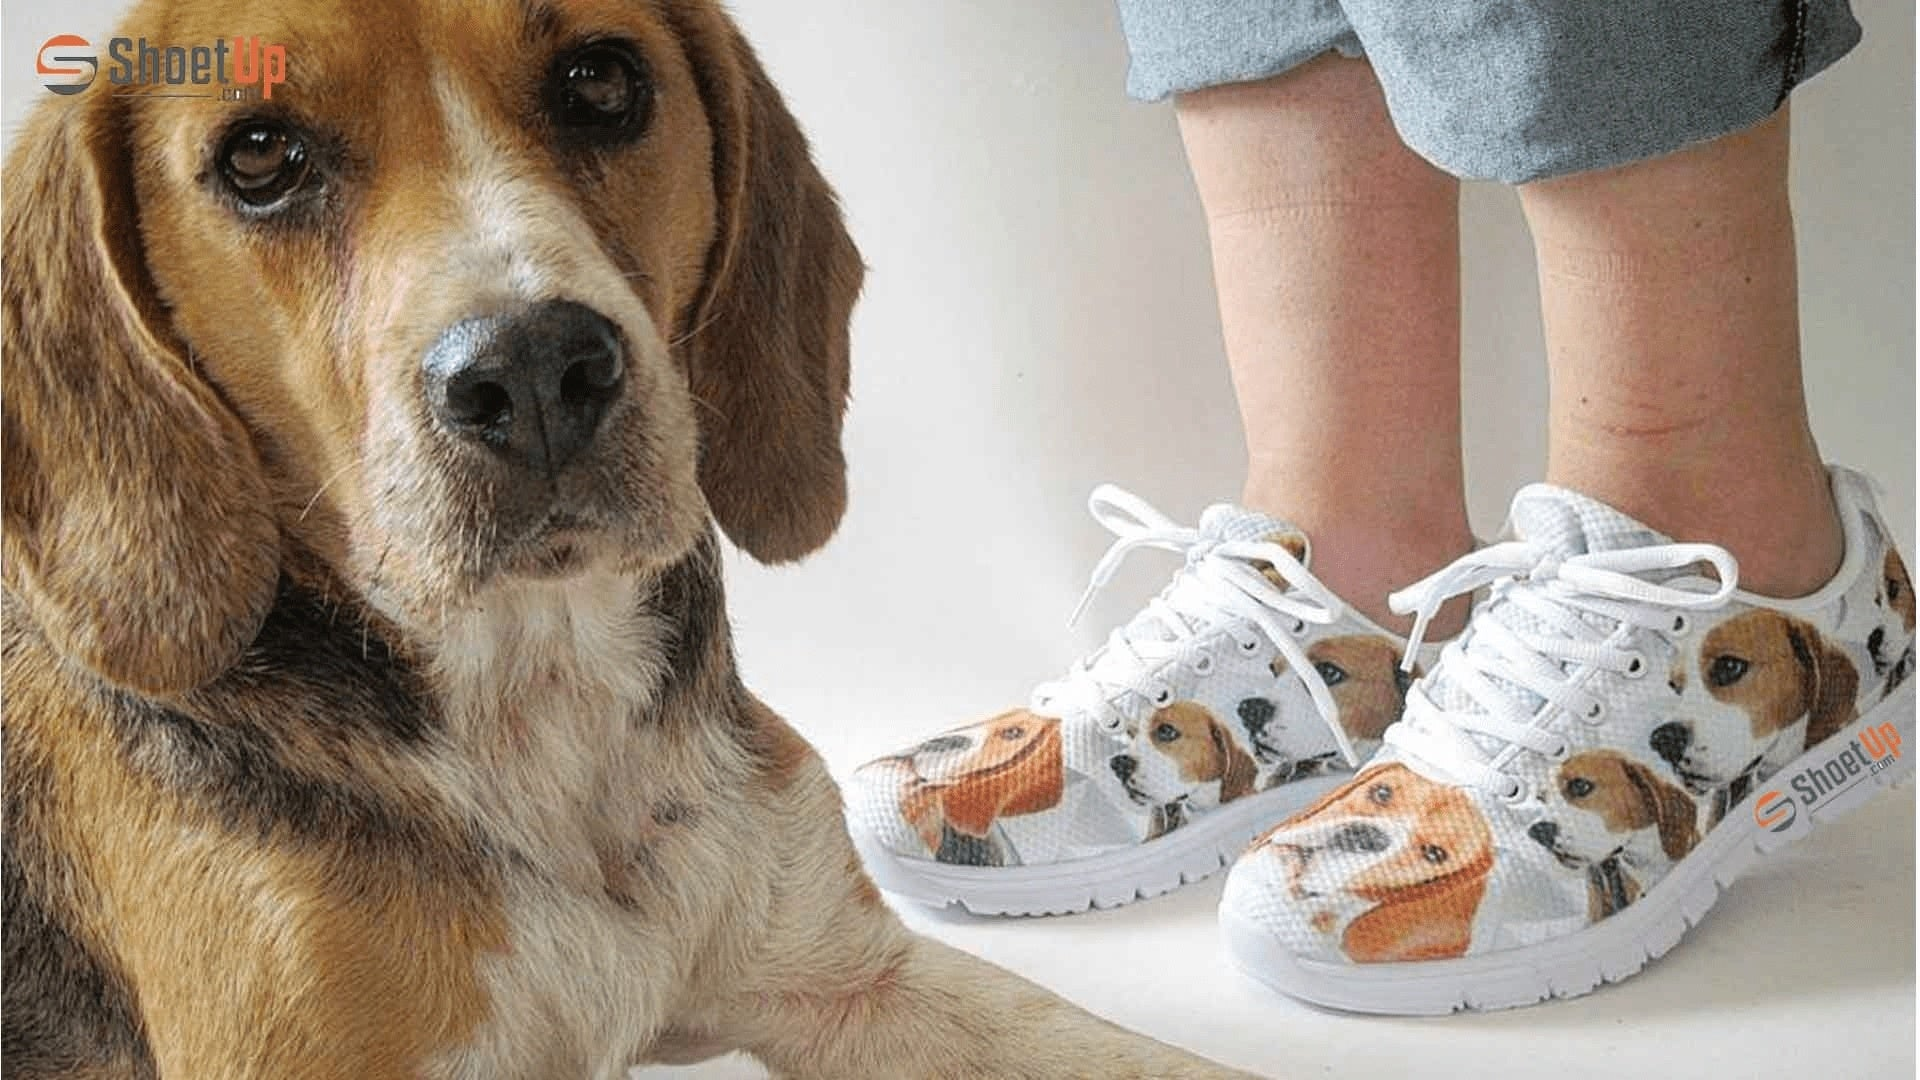 Shoetup Shoes PET Products. Valued at over $50,000. Quit Your Job & Run a Shoe Empire! Screenshot - 2